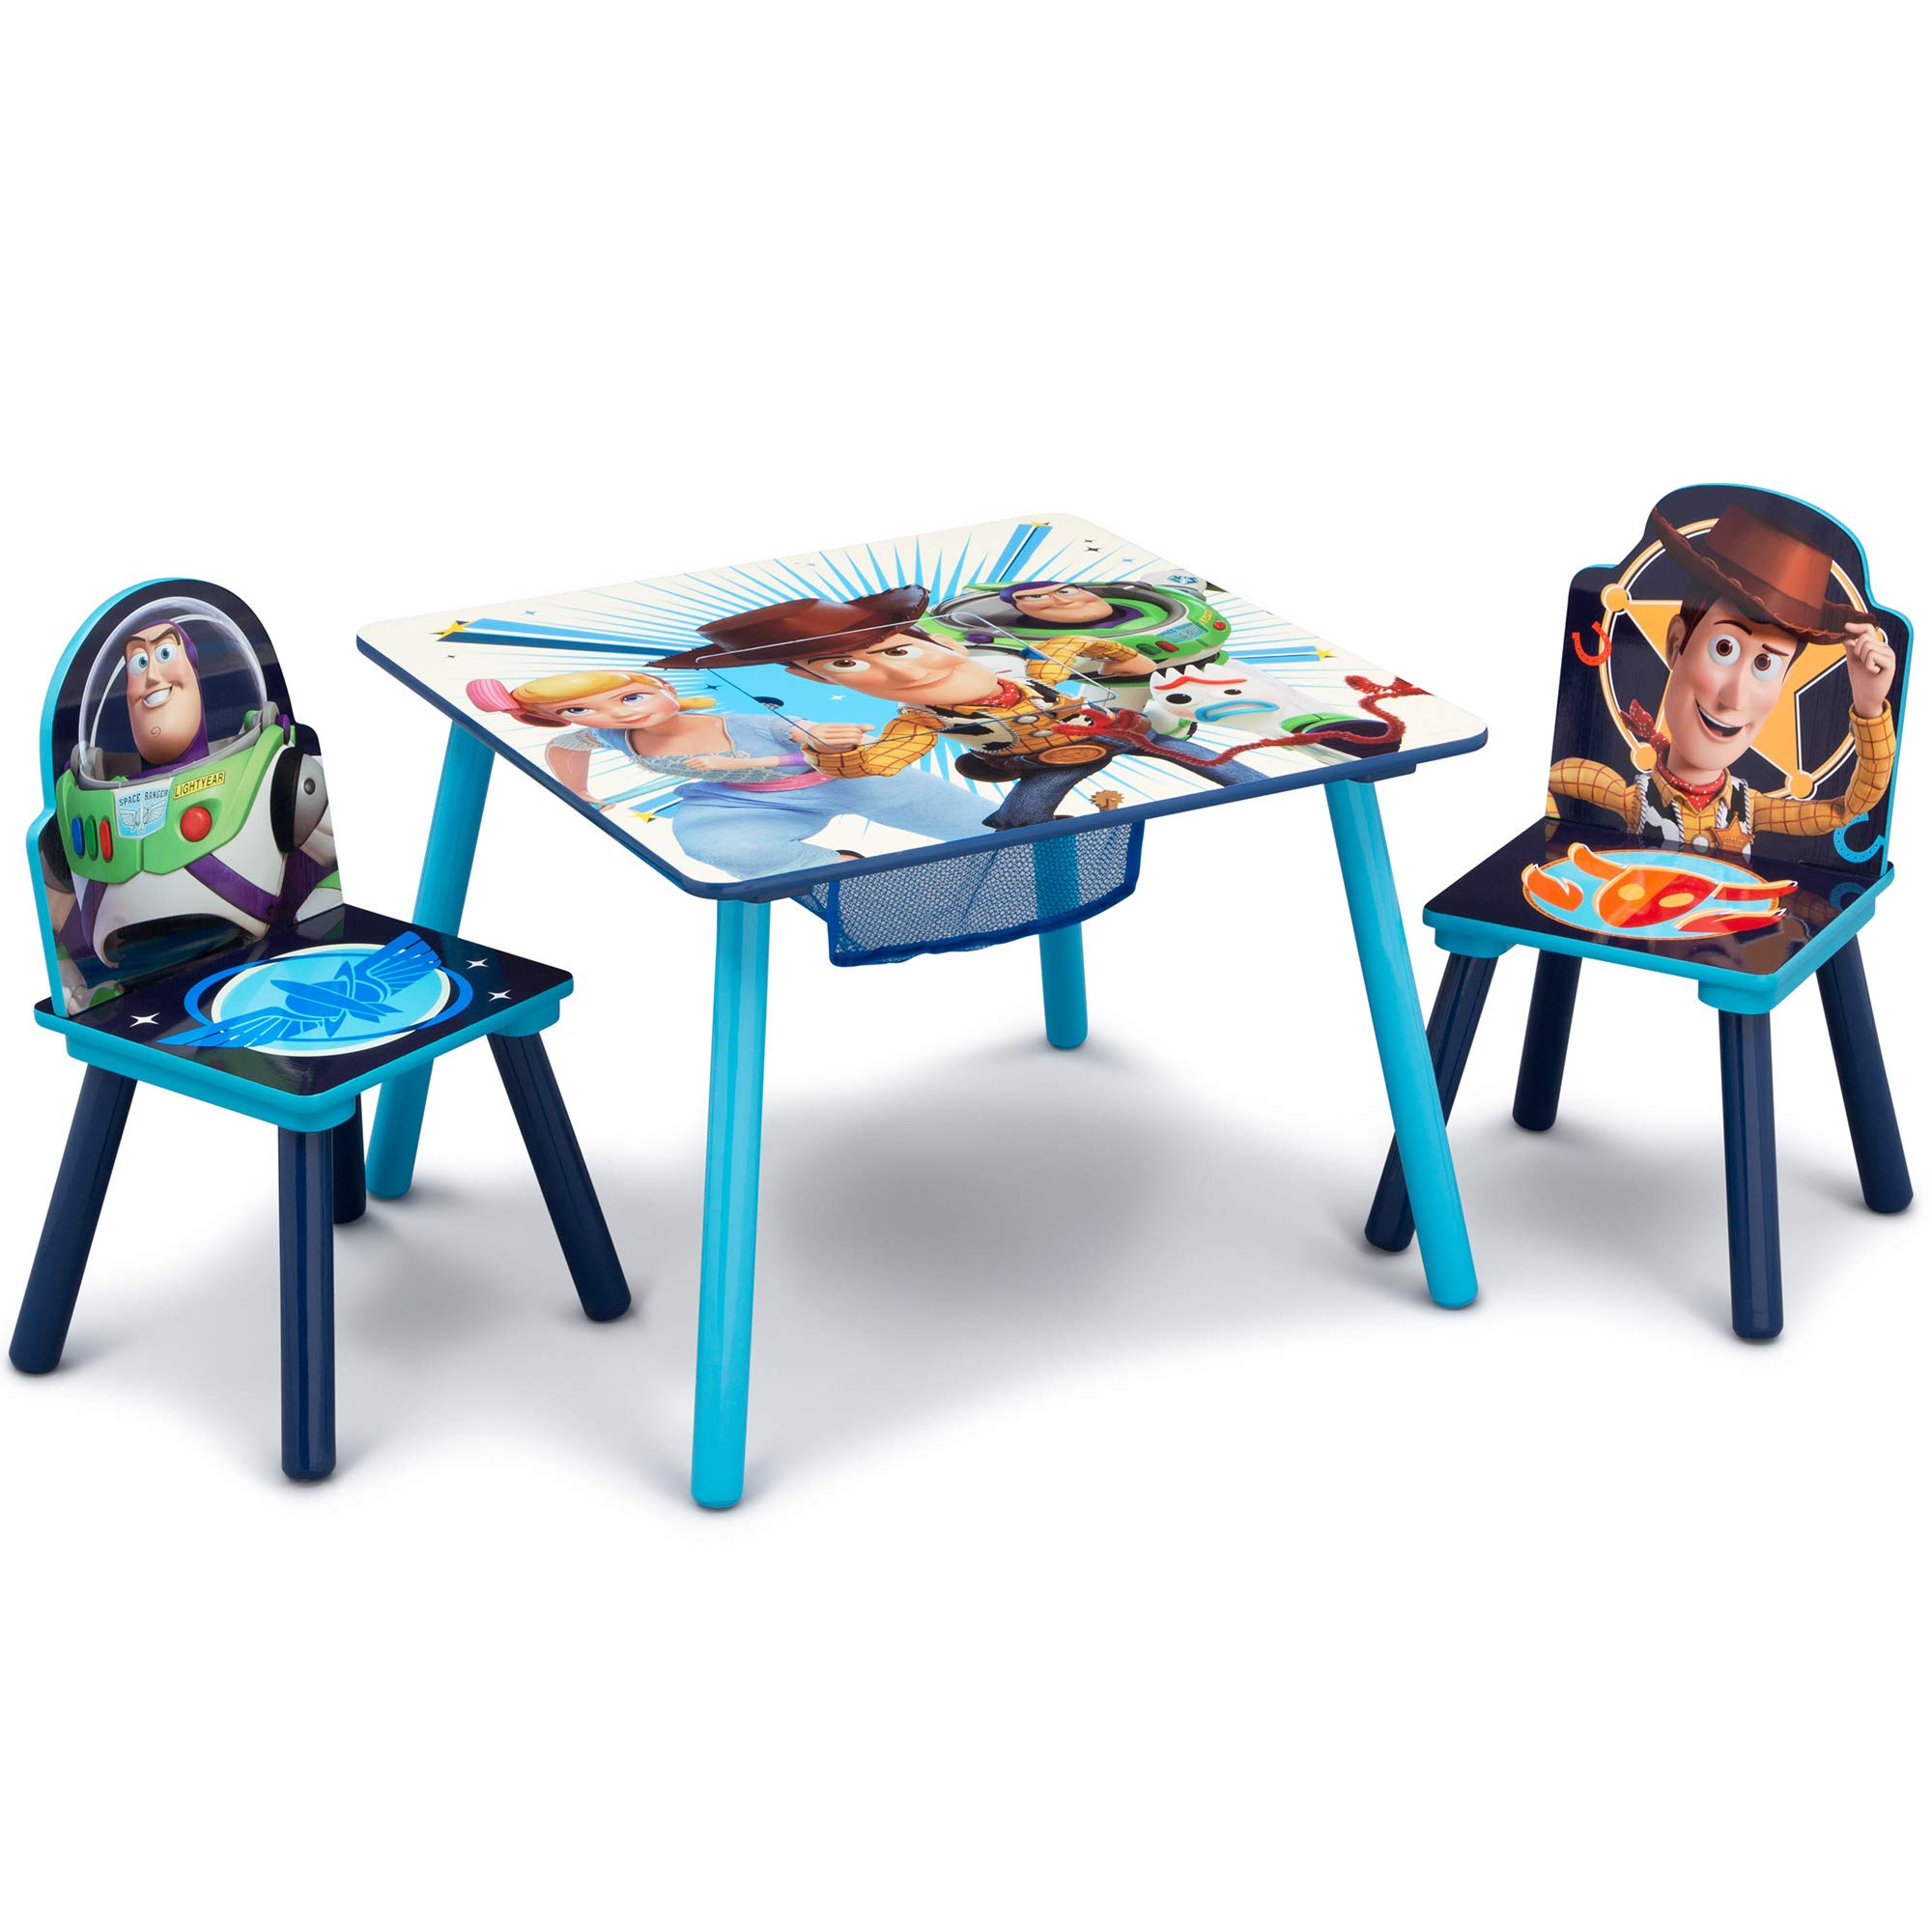 Delta Children Kids Chair Set and Table (2 Chairs Included), Disney/Pixar Toy Story 4